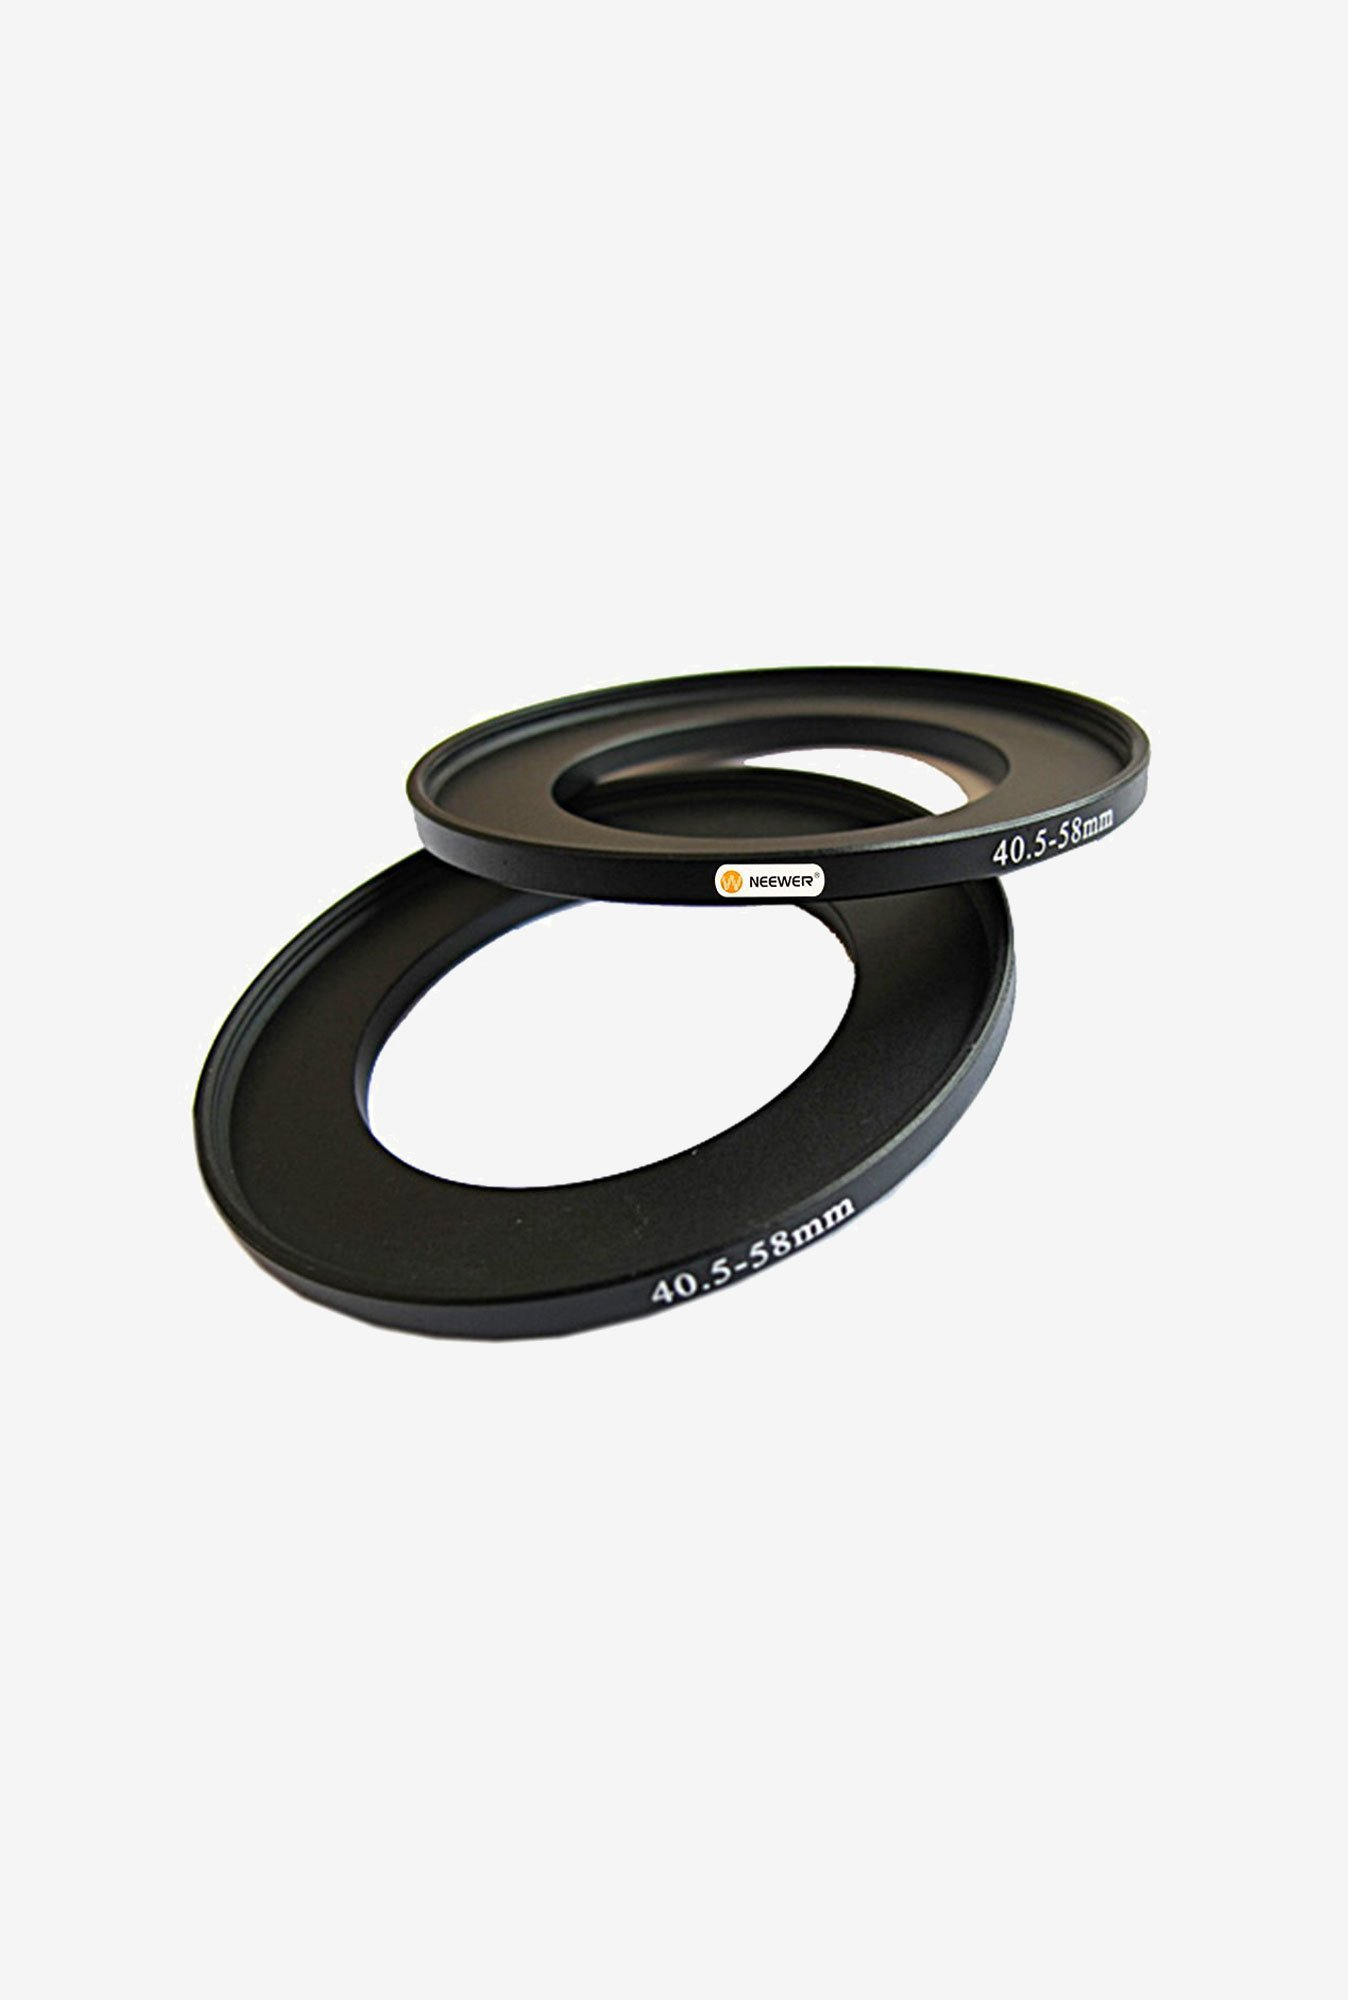 Neewer 40.5-58mm Step-Up Ring Adapter (Black)